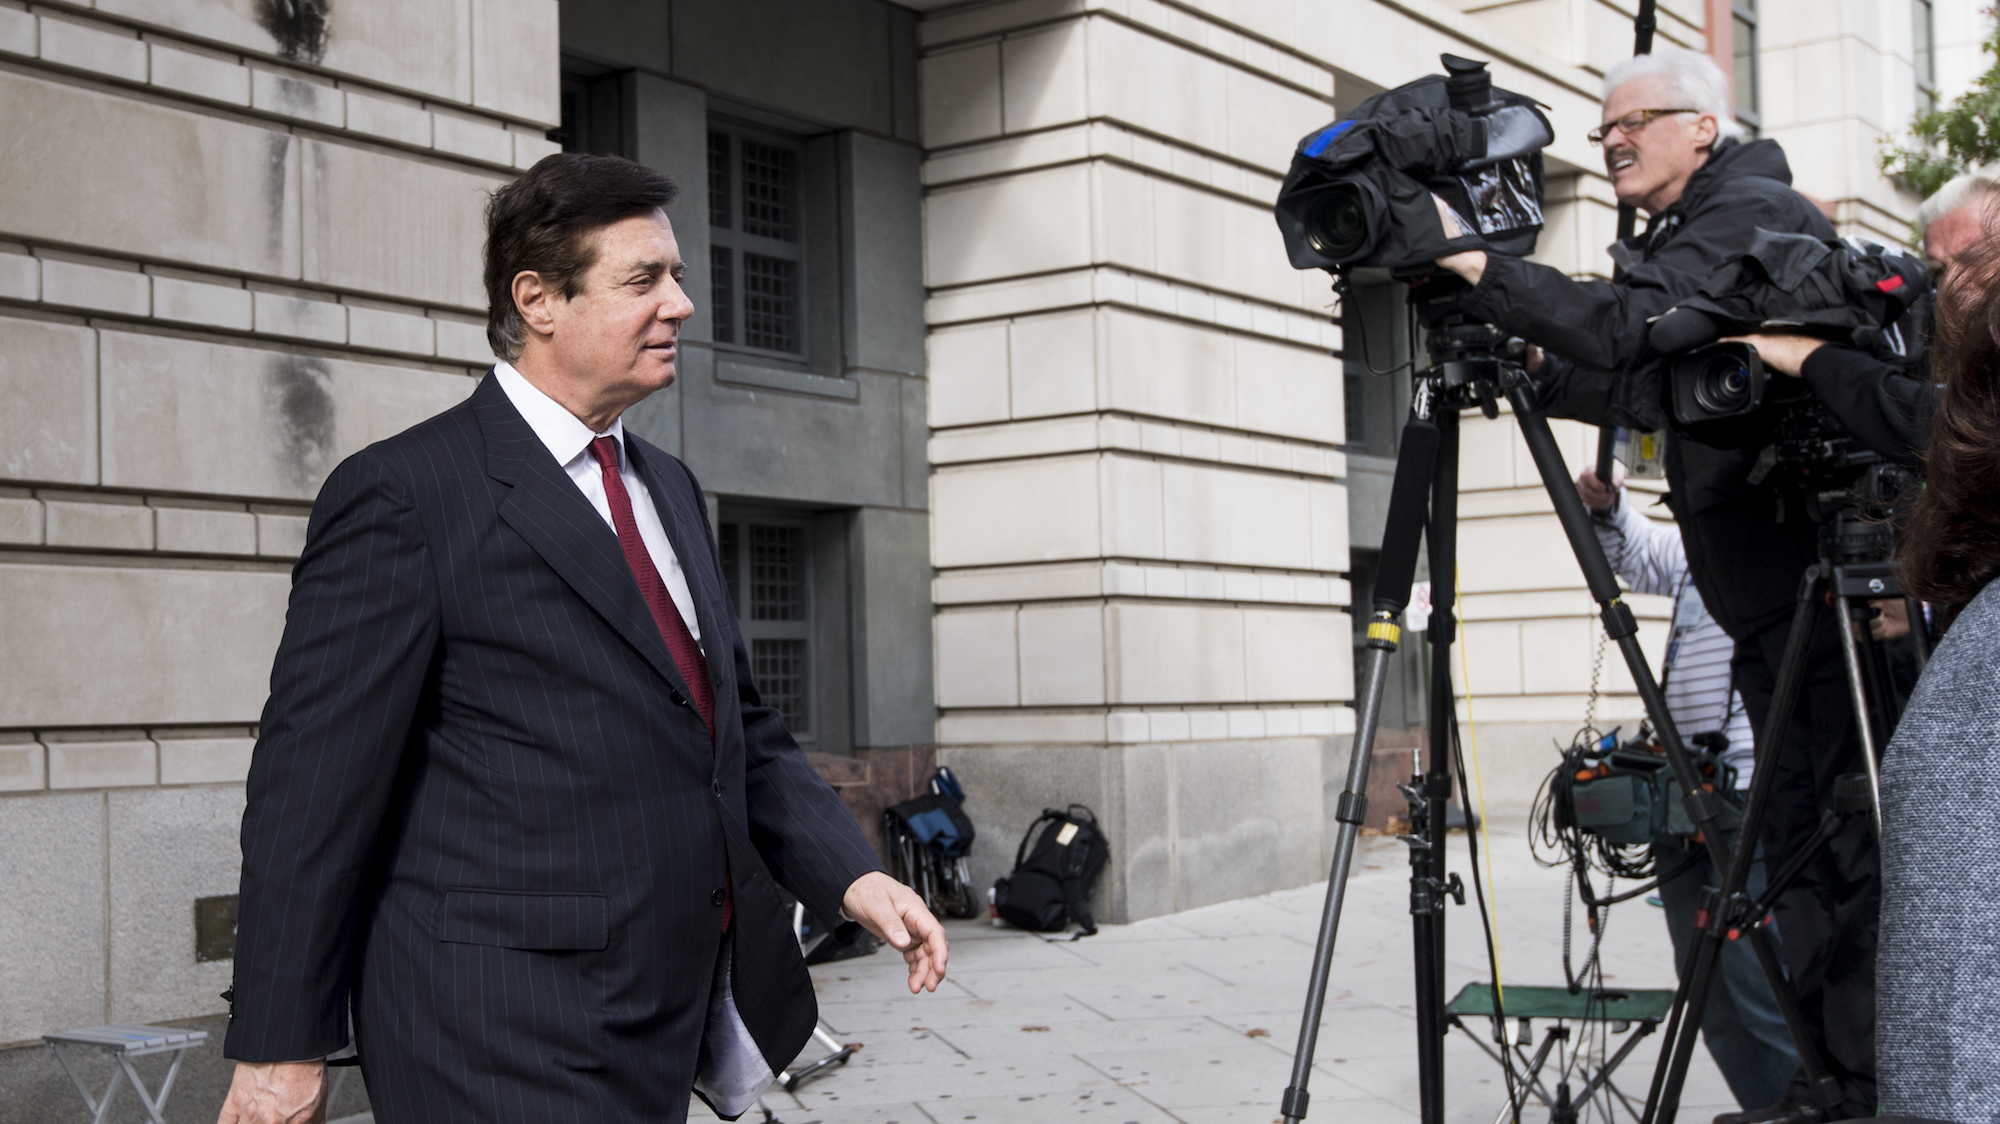 New Pieces of Evidence that Helped Put Paul Manafort Behind Bars